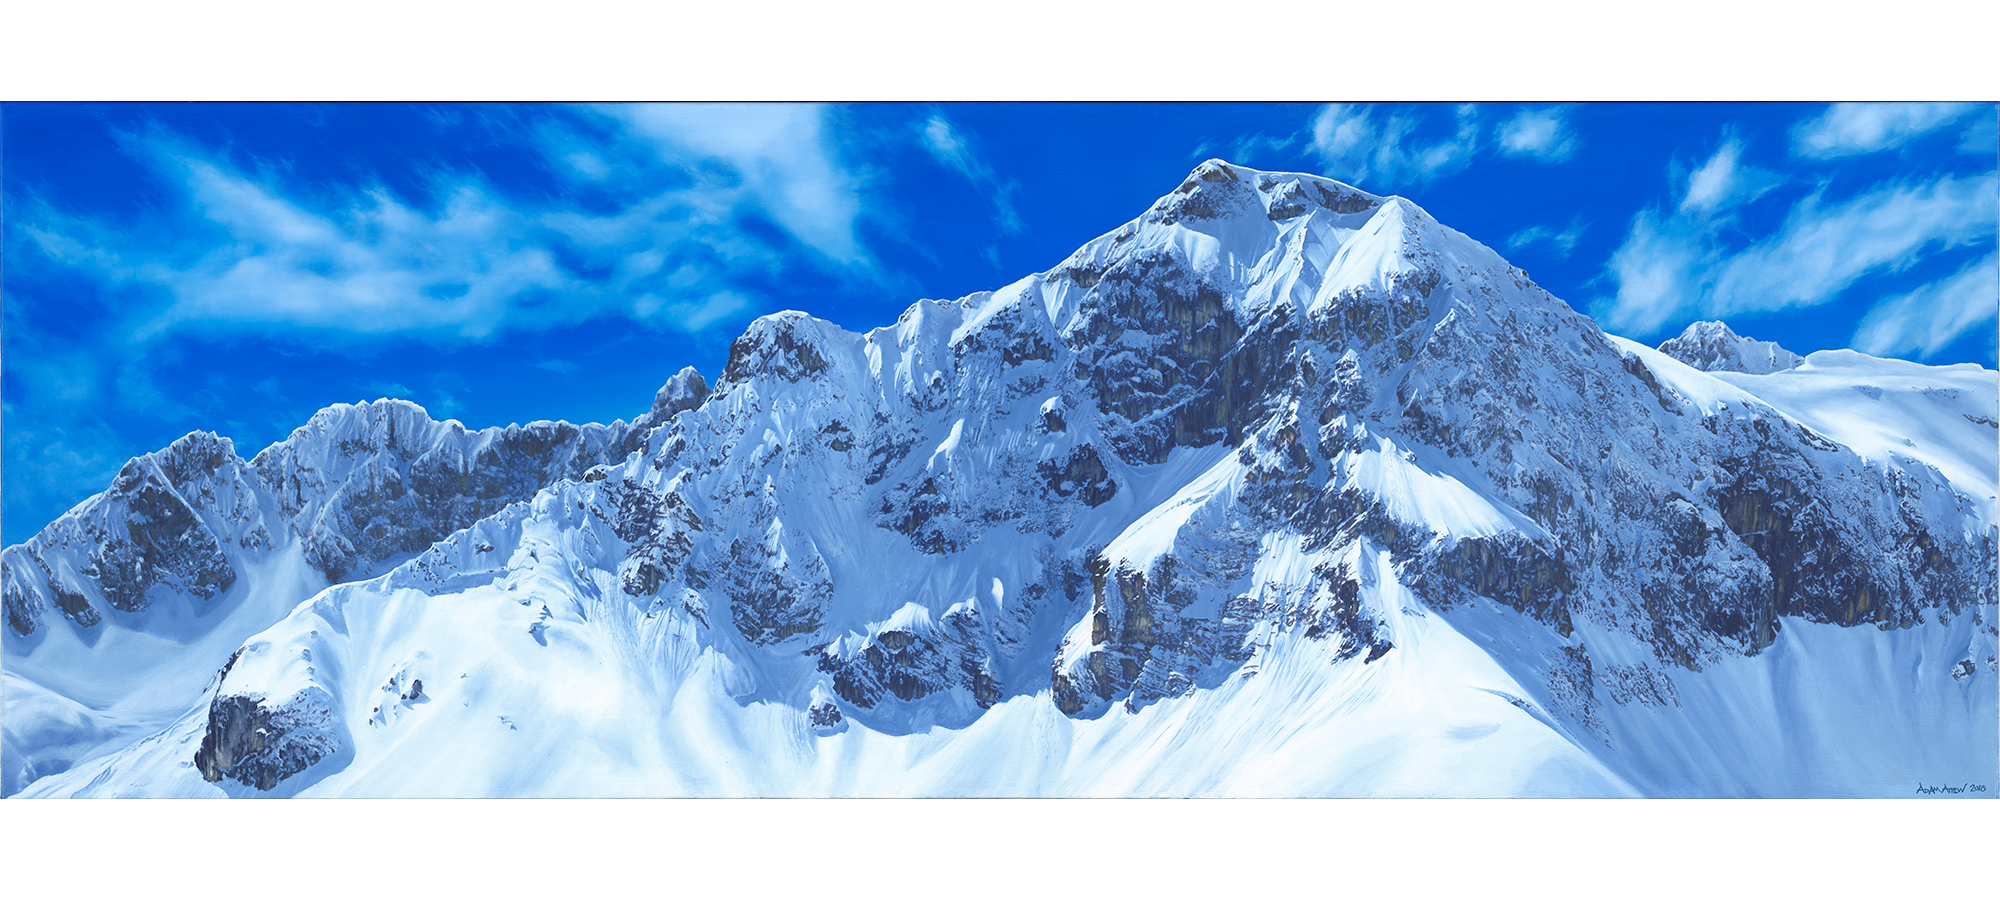 Austria Lech Attew Painting Landscape artist art ski snowboard mountain winter Snow Alpine Alps Montagne Alpes